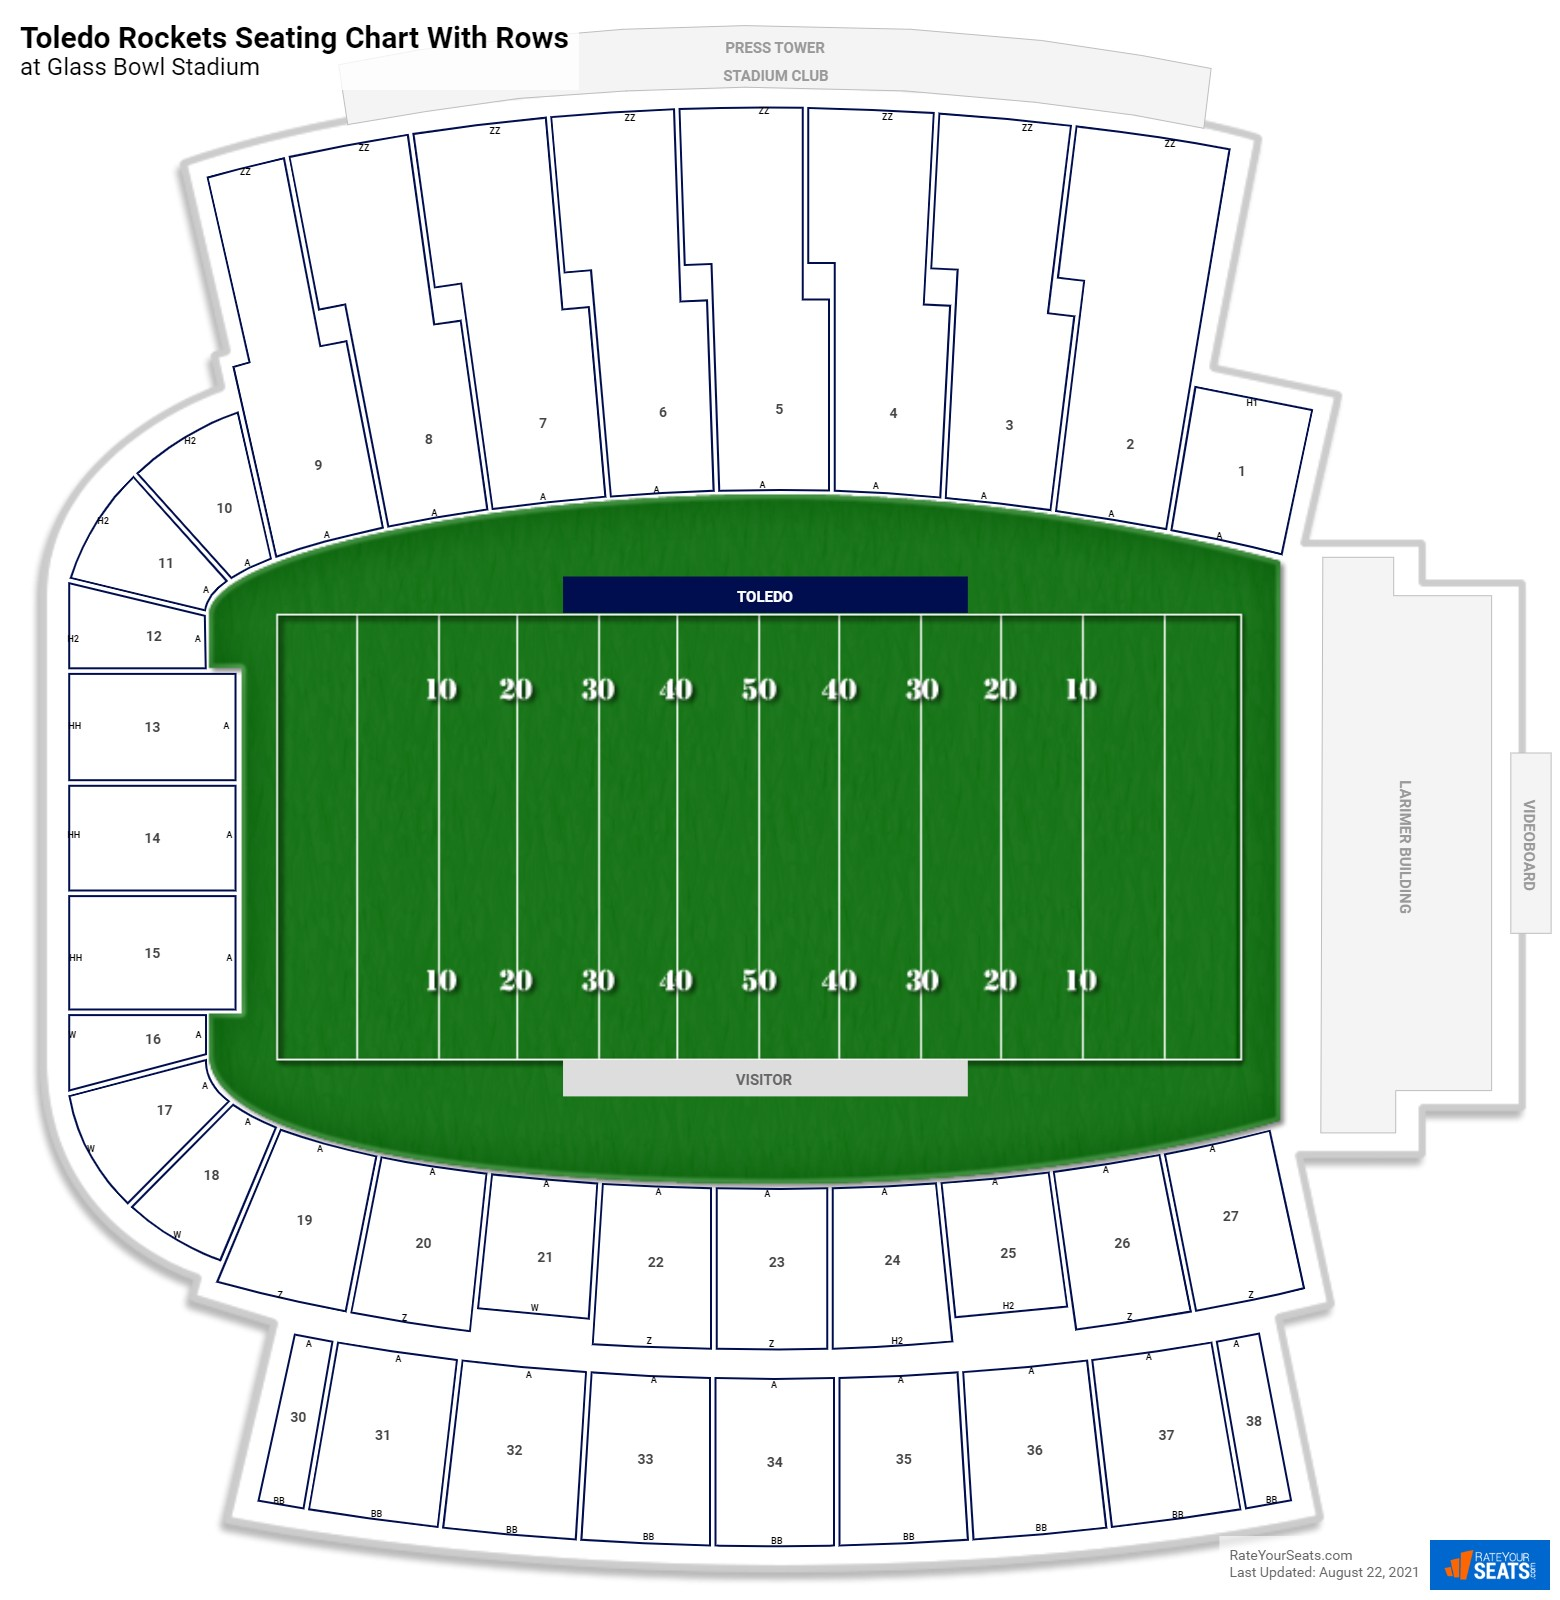 Glass Bowl seating chart with rows